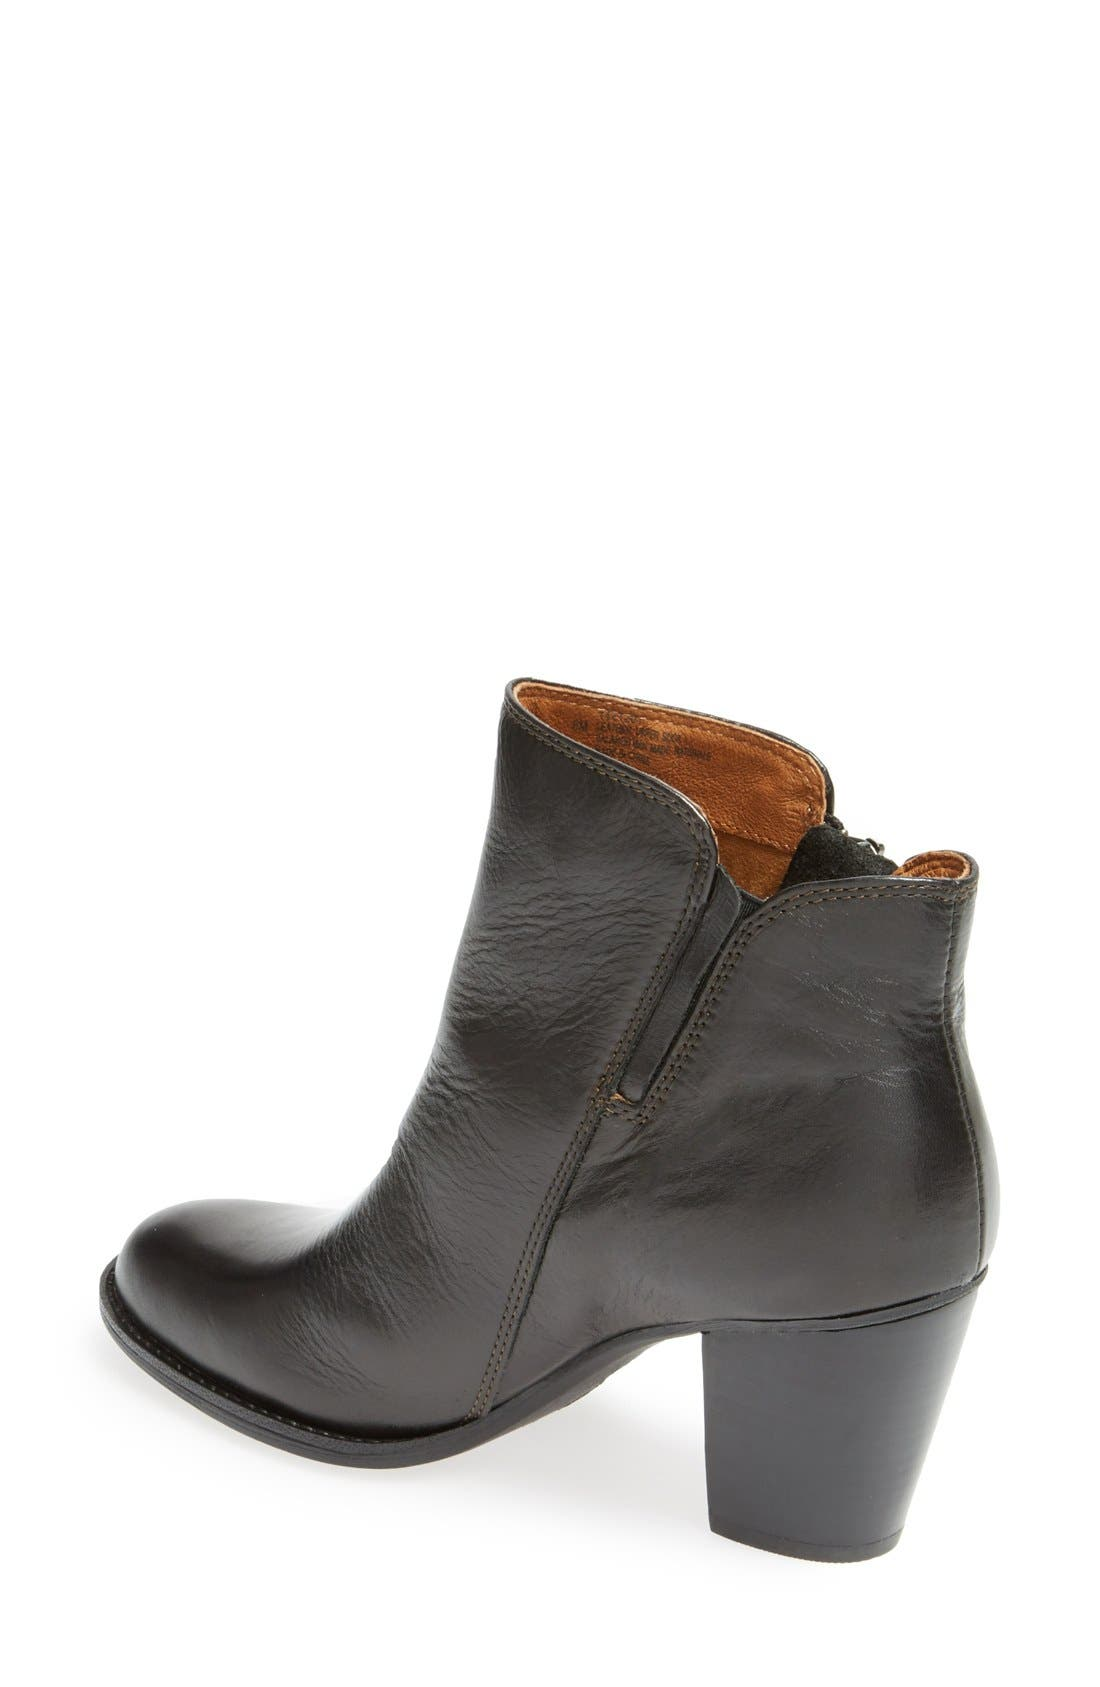 'Wera' Leather Bootie,                             Alternate thumbnail 2, color,                             001